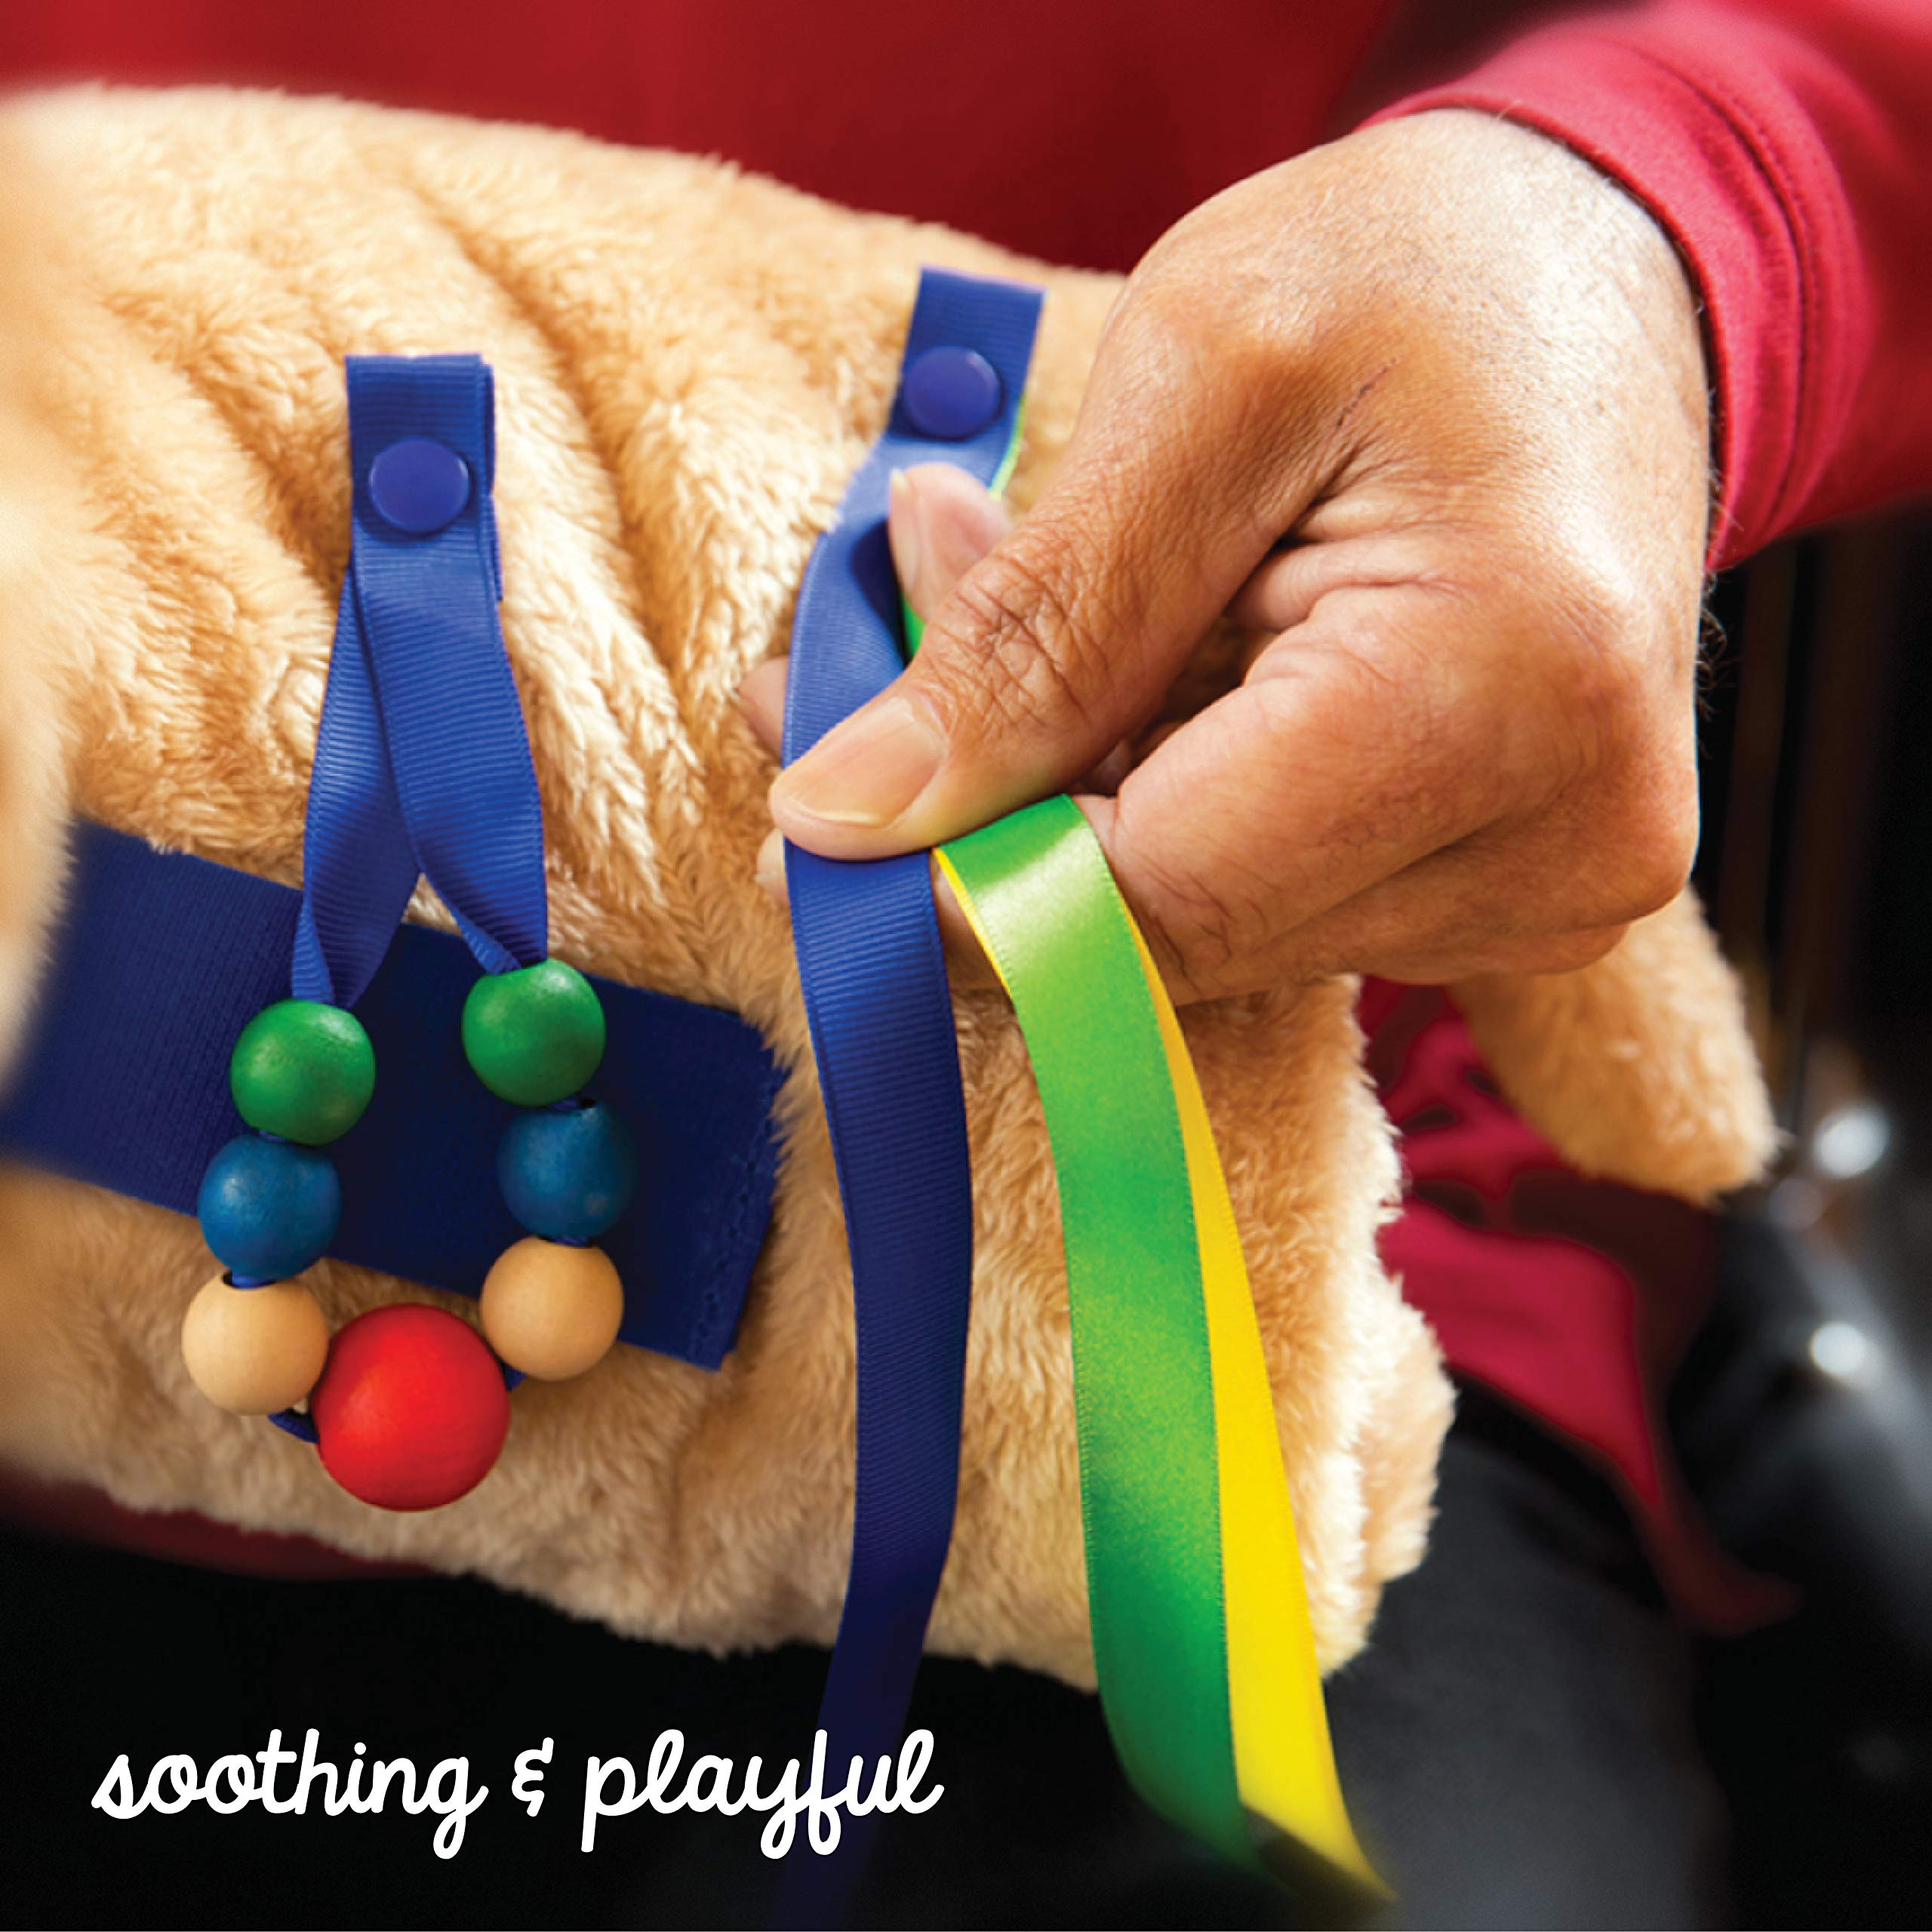 Twiddle Pup Sensory Toys for Autistic Children, Dementia, and Alzheimers Patients | Fidget Toys for Therapy and Anxiety Relief